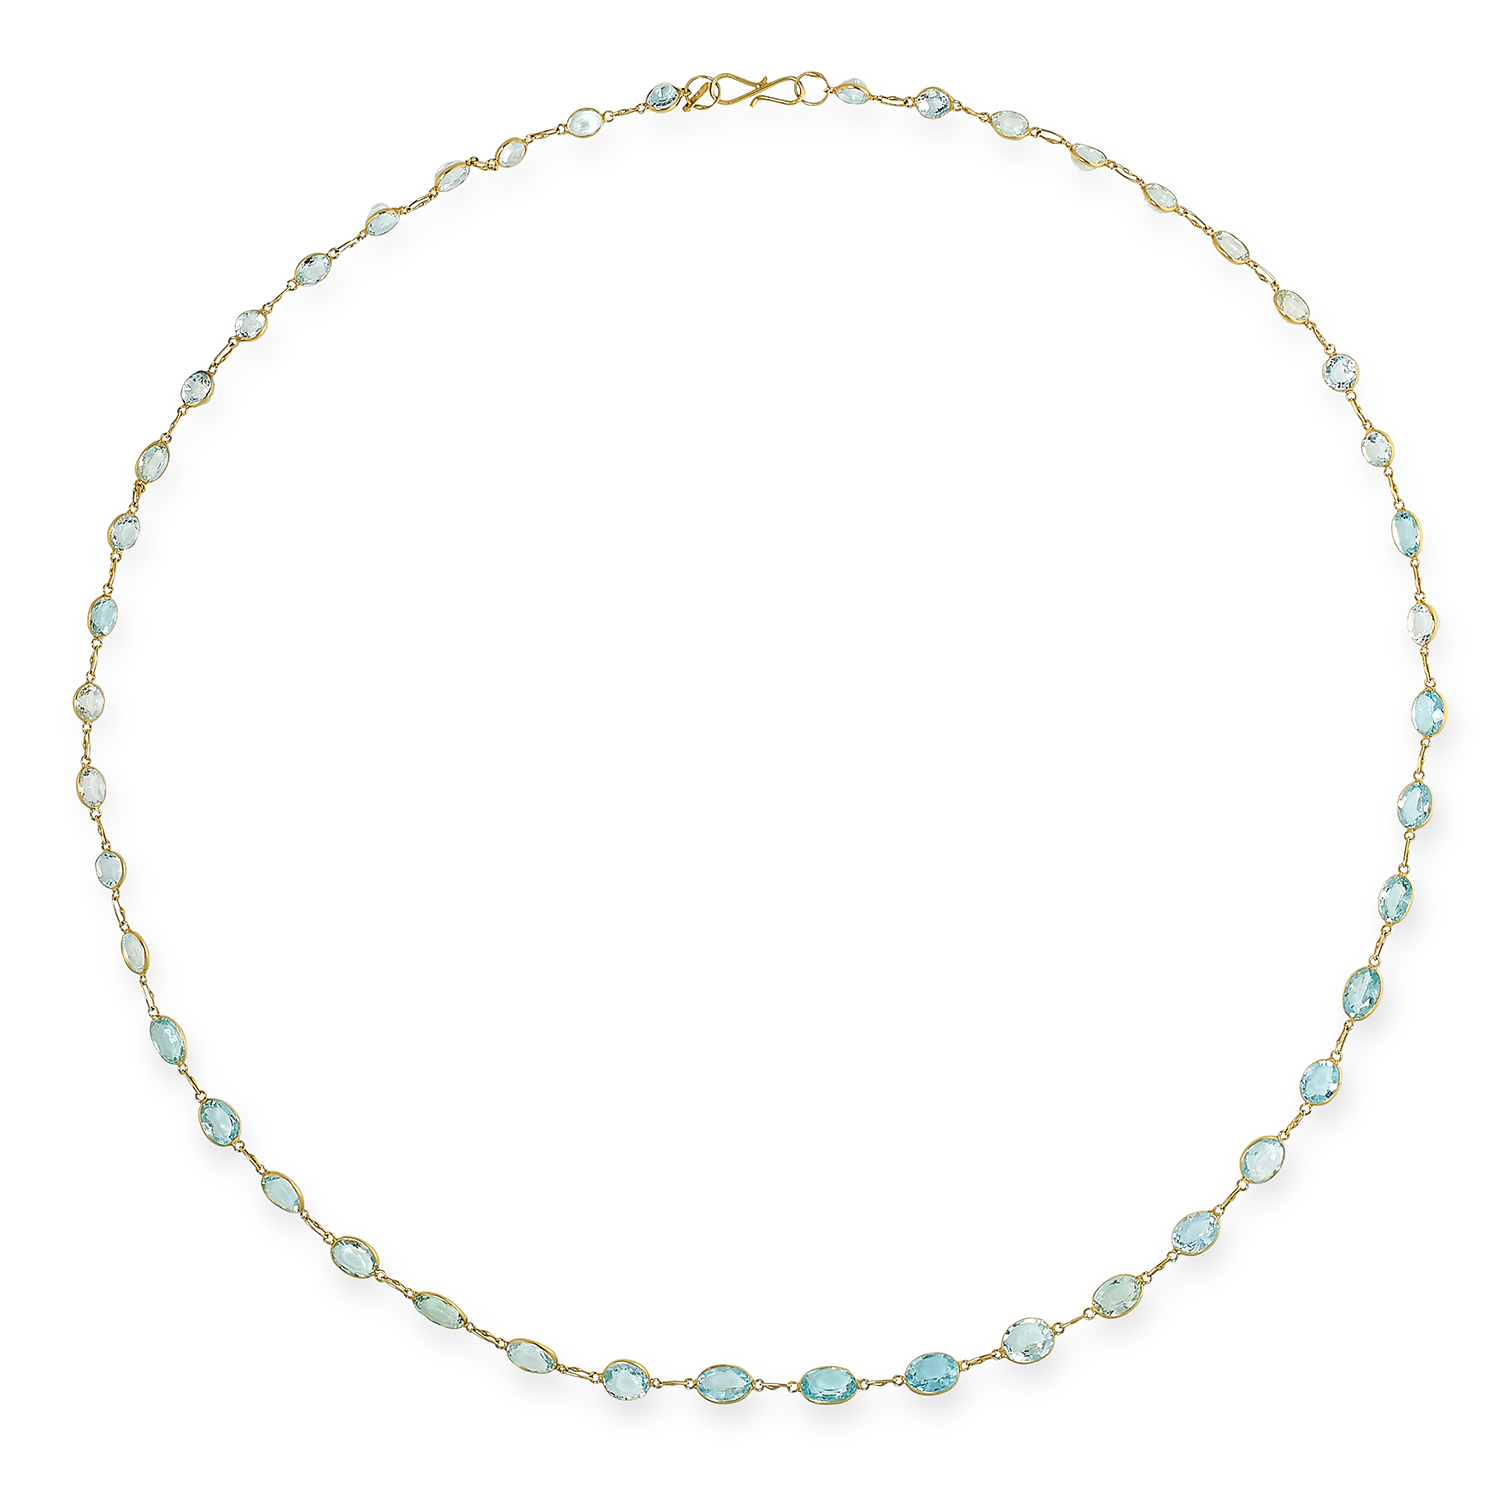 AQUAMARINE NECKLACE set on a fine link chain with oval cut aquamarines, 54cm, 6.7g.